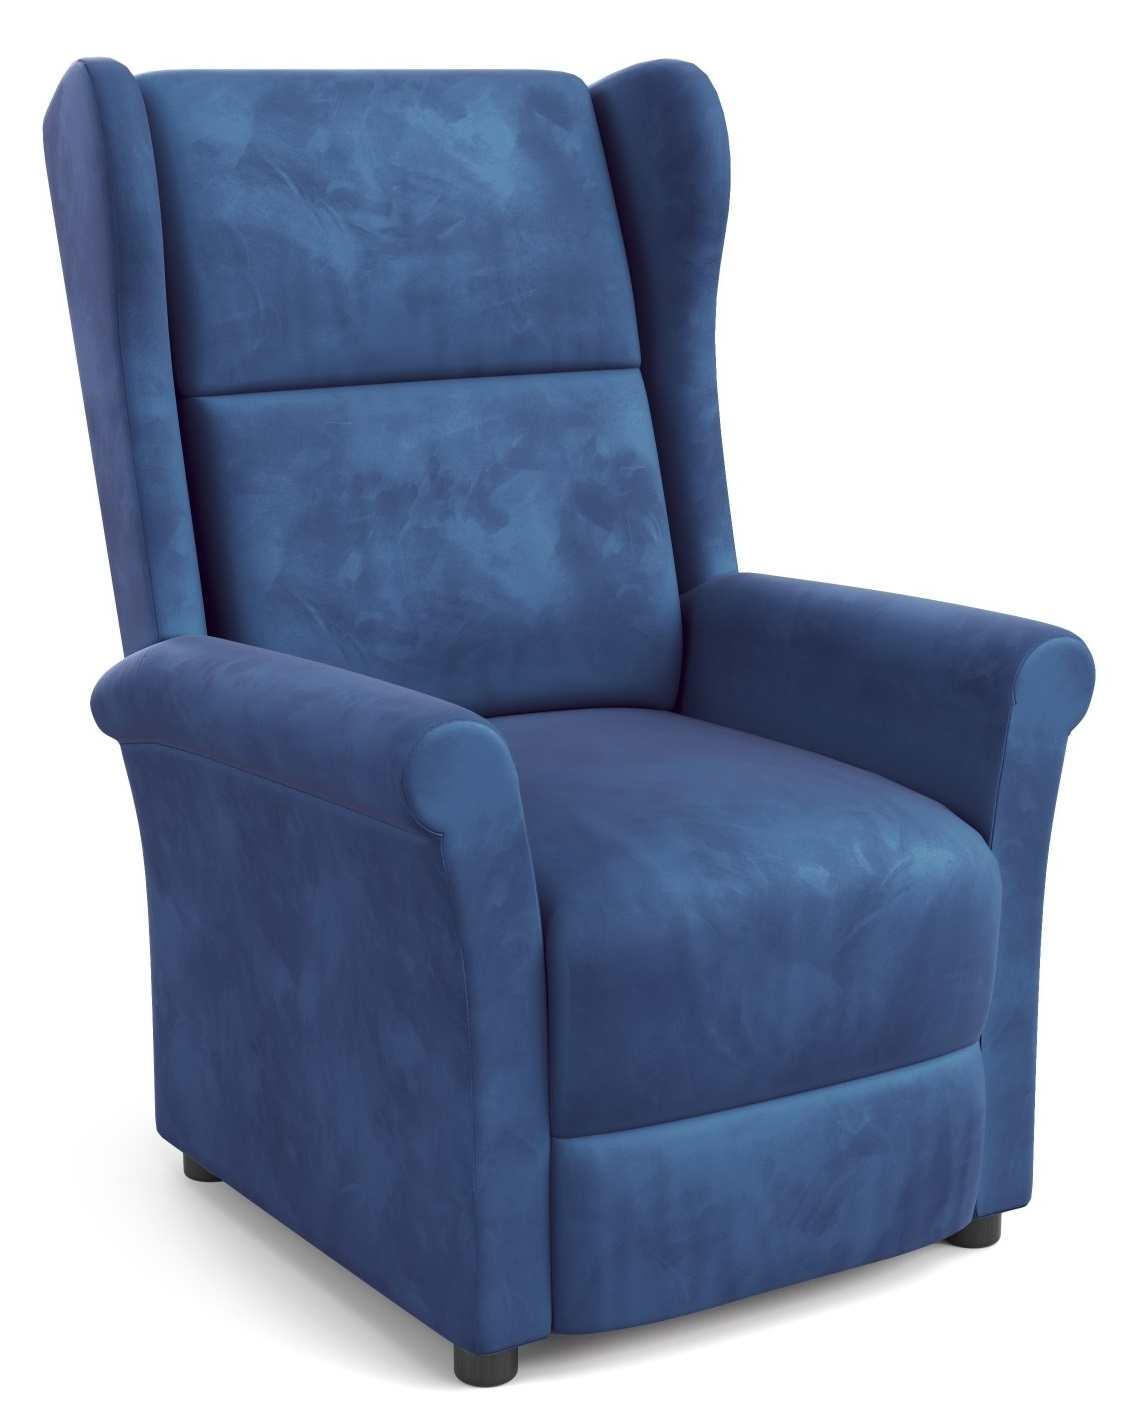 Fauteuil Agustin in blauw | Home Style